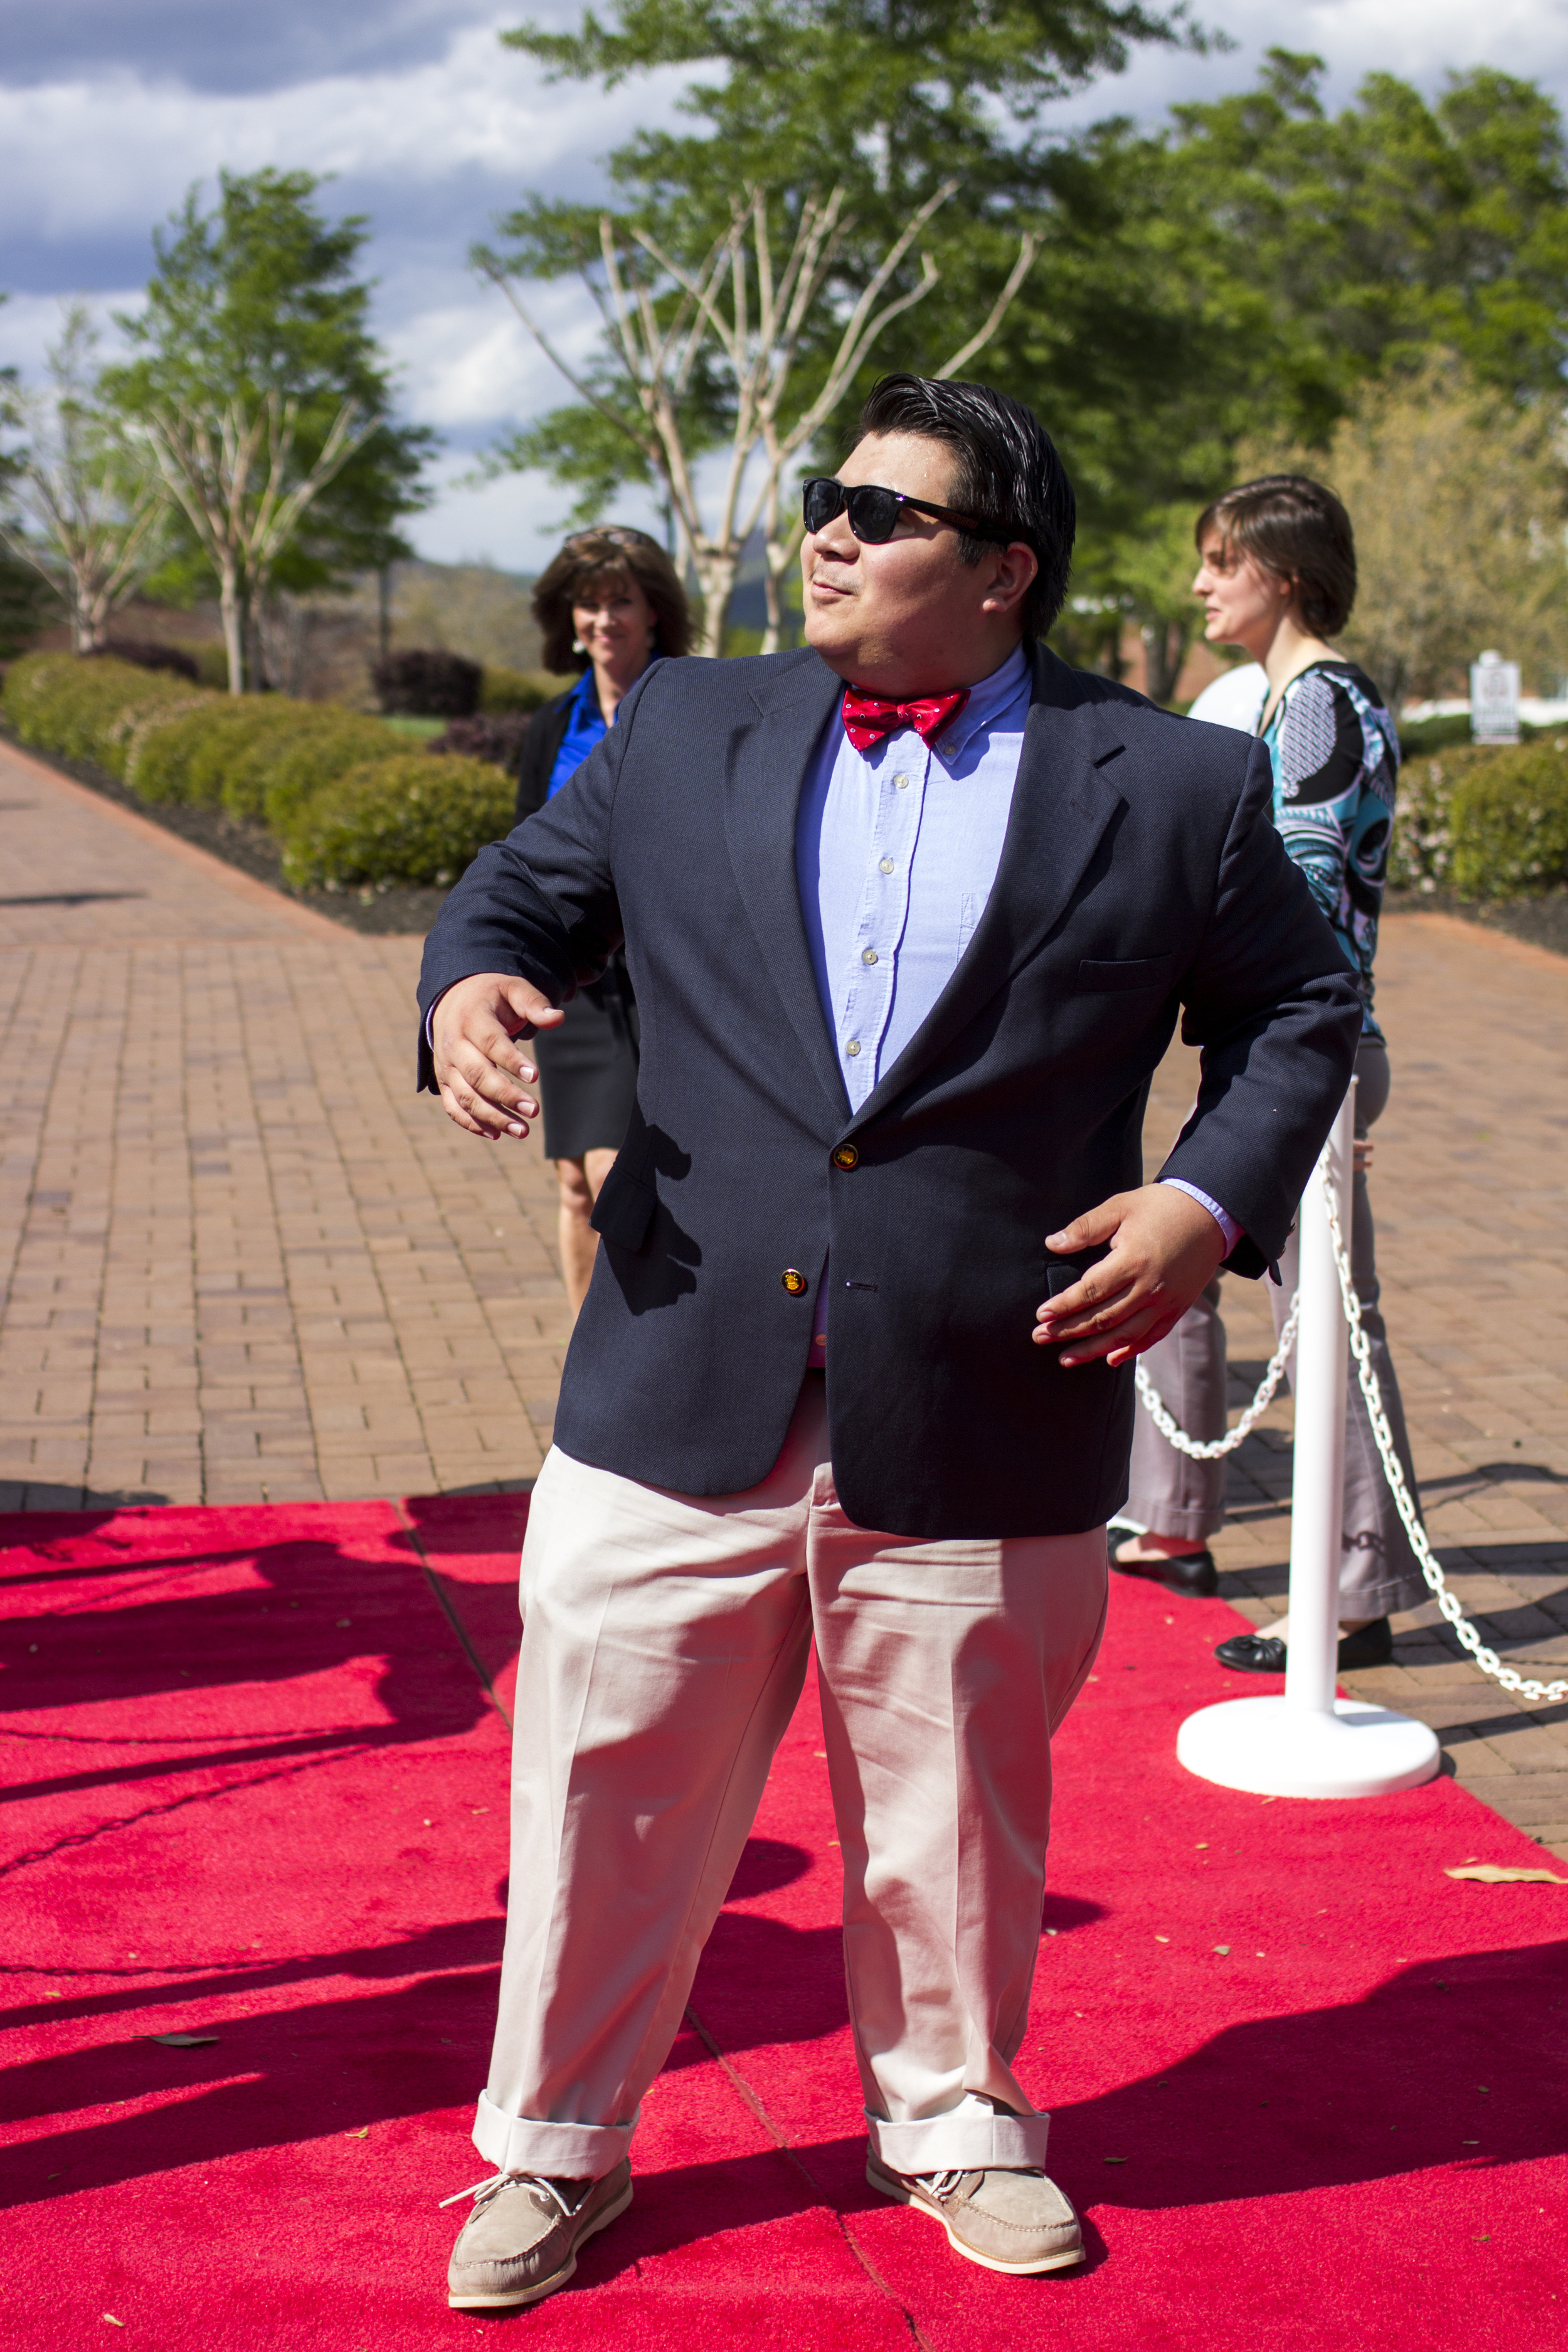 Pedro Mateo shows his natural,I-was-born-for-this-life pose as he enters into the film festival.